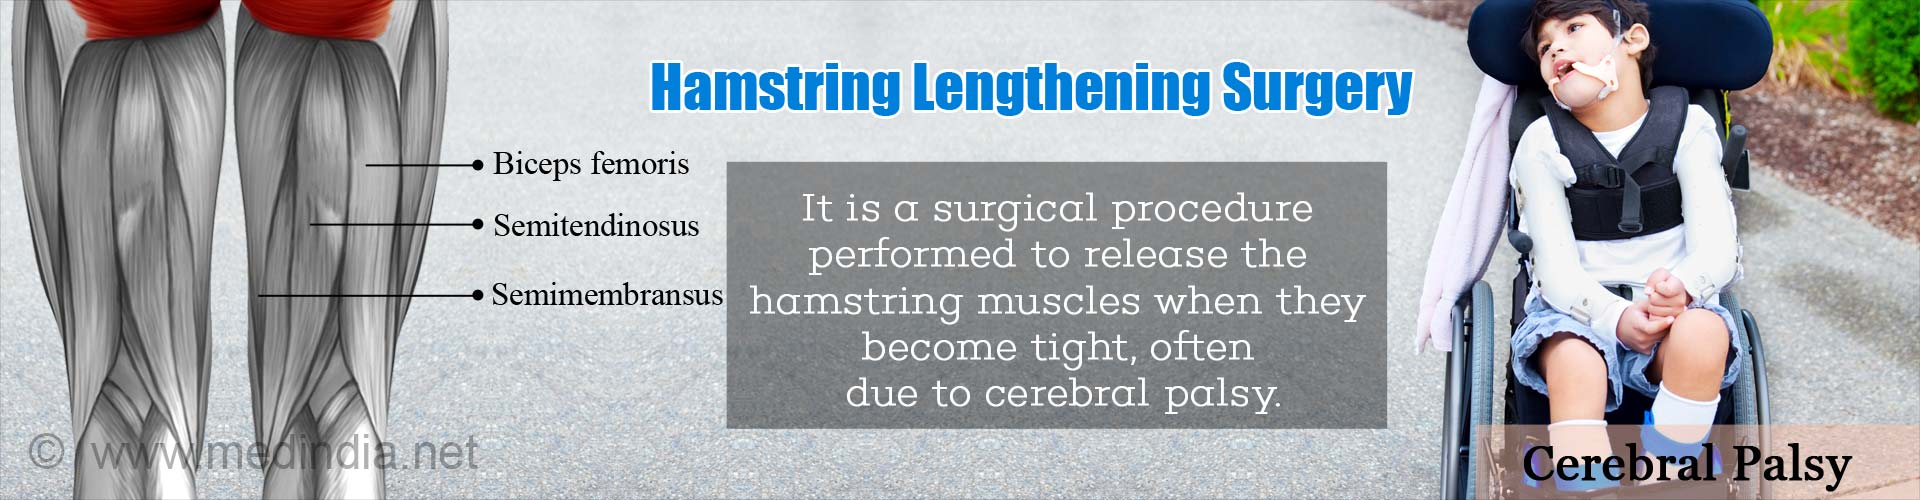 Hamstring Lengthening Surgery